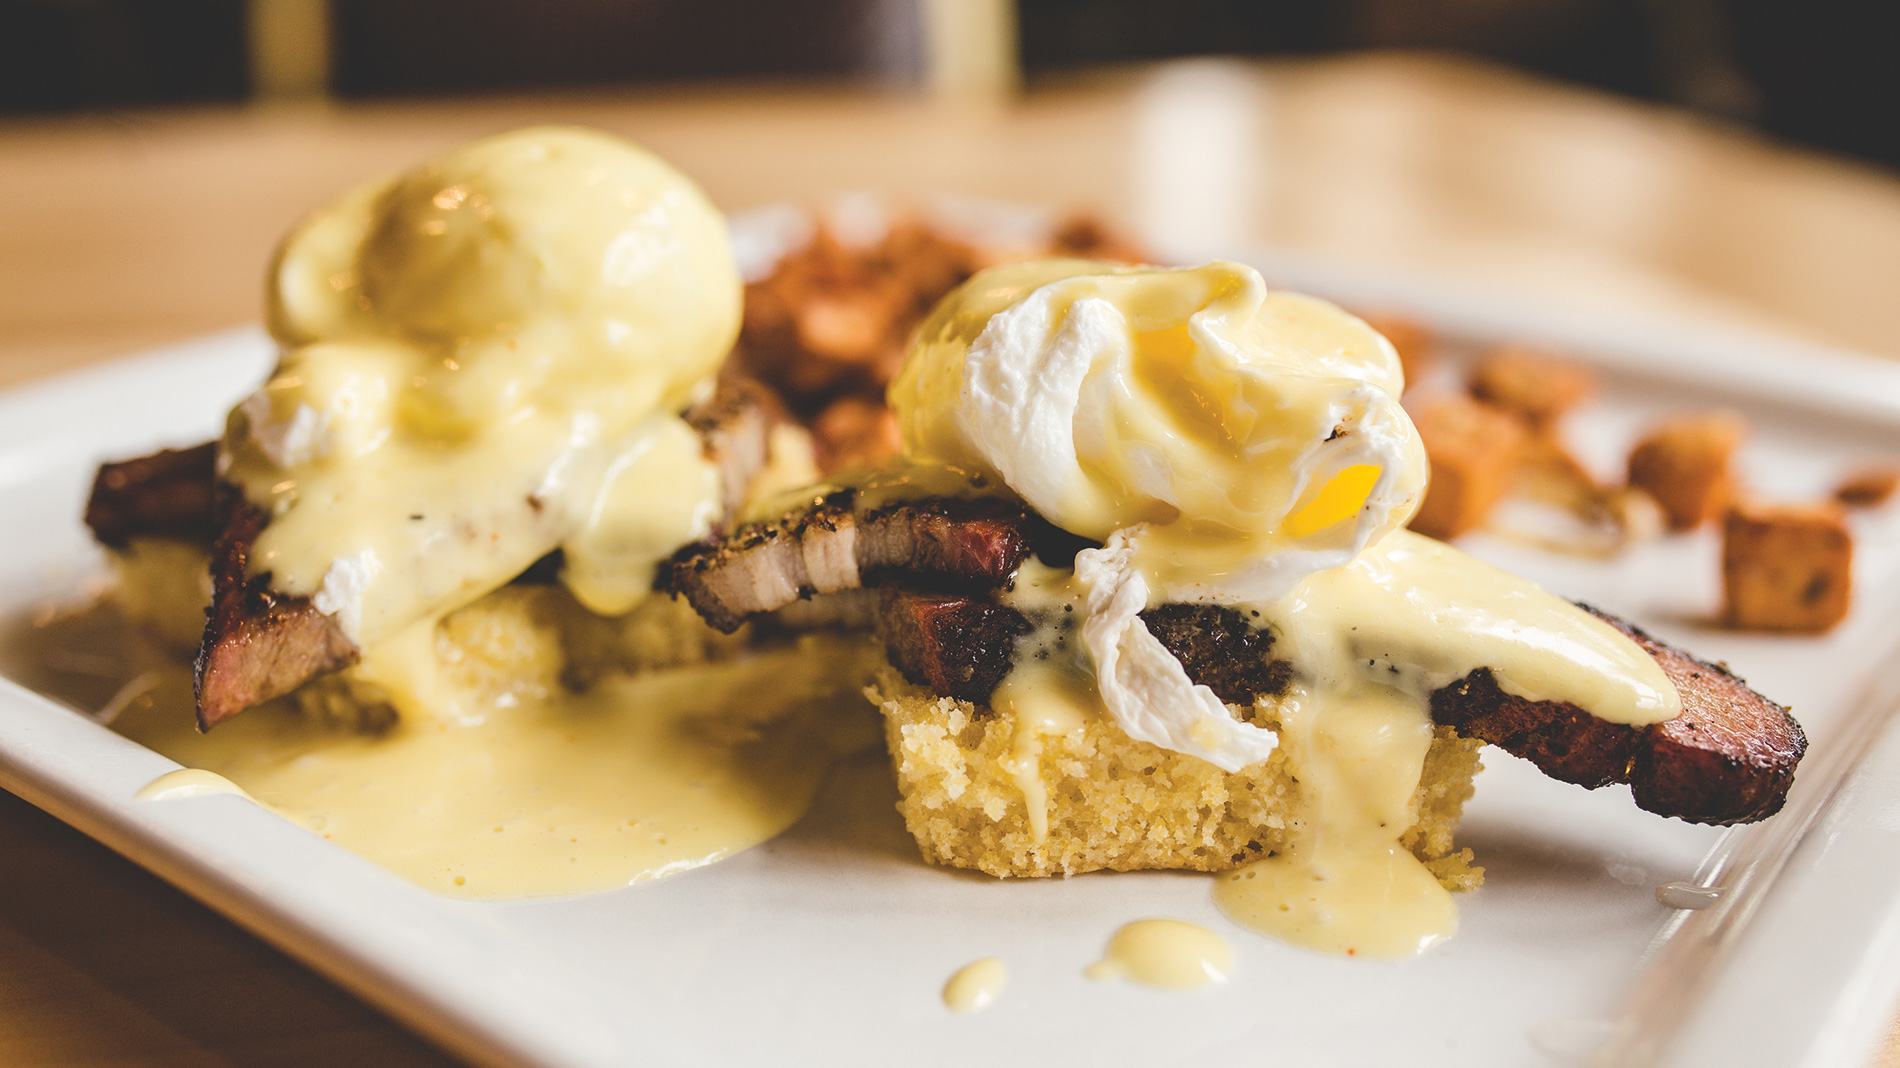 cornbread benedict from egg